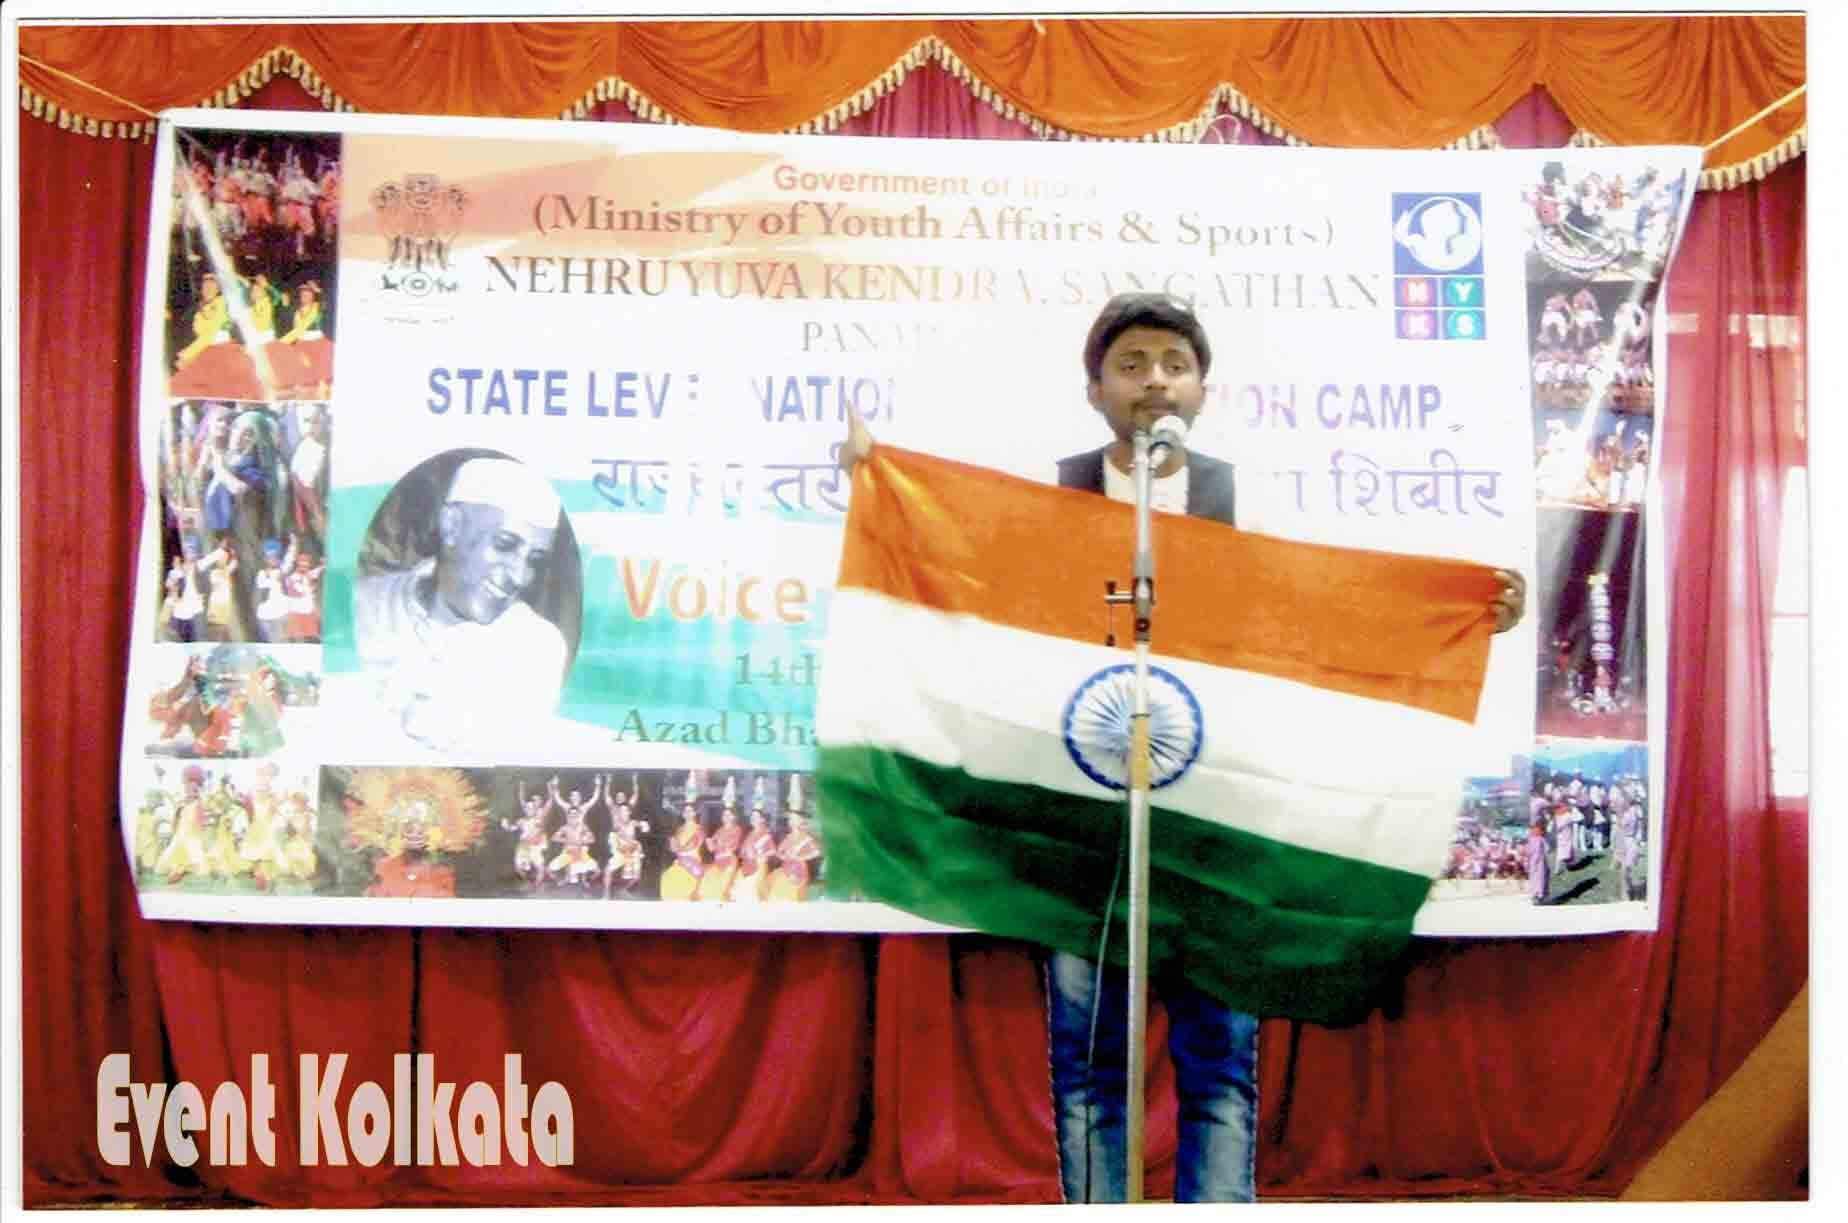 Magic Show in Government Camp